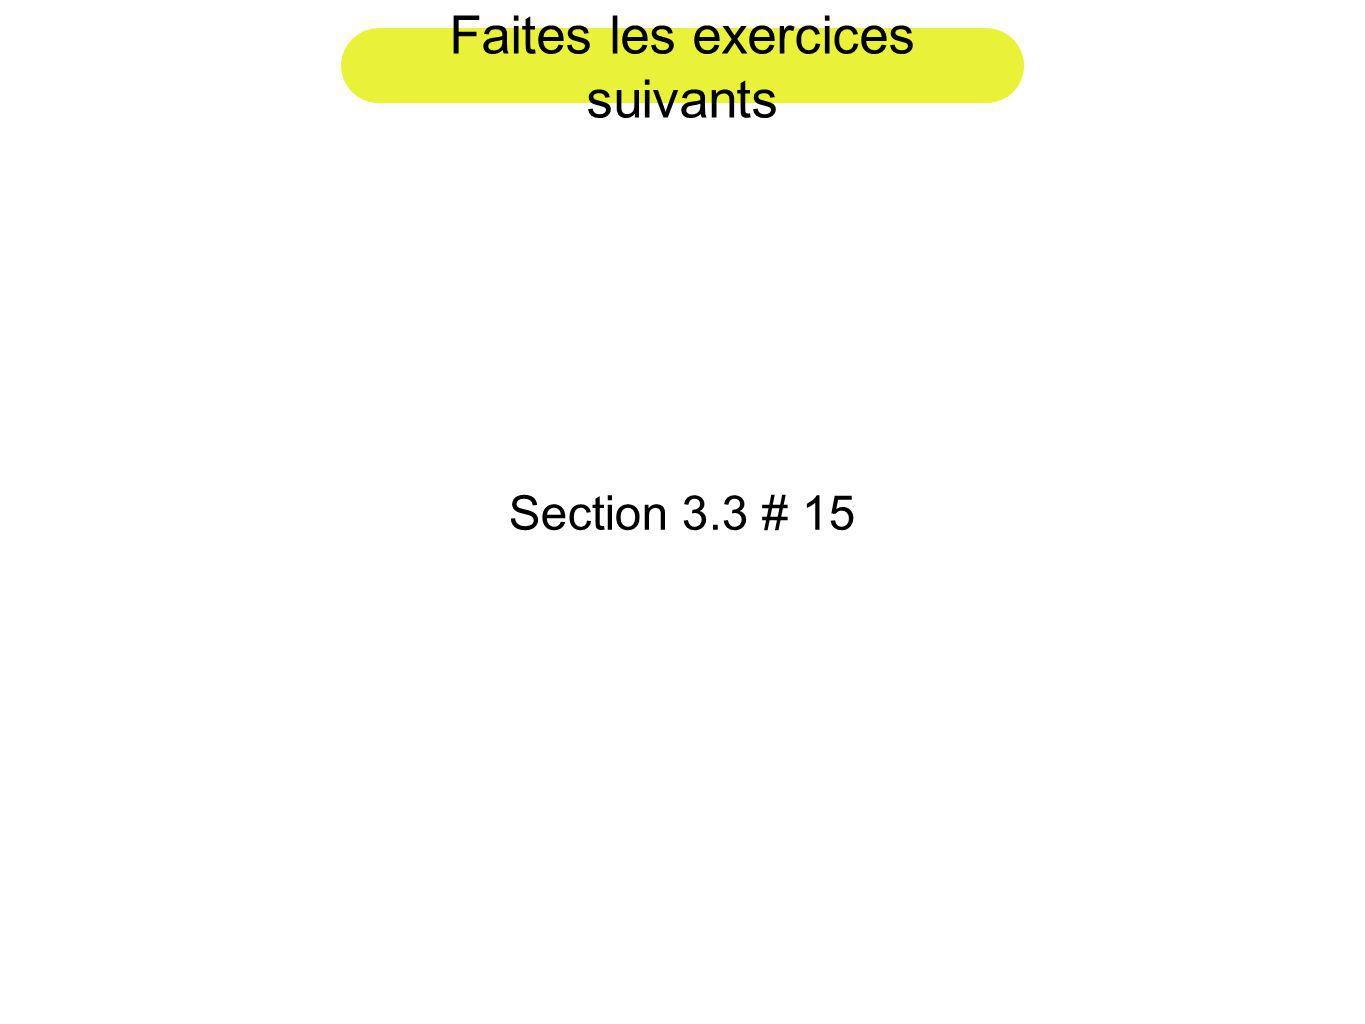 Faites les exercices suivants Section 3.3 # 15